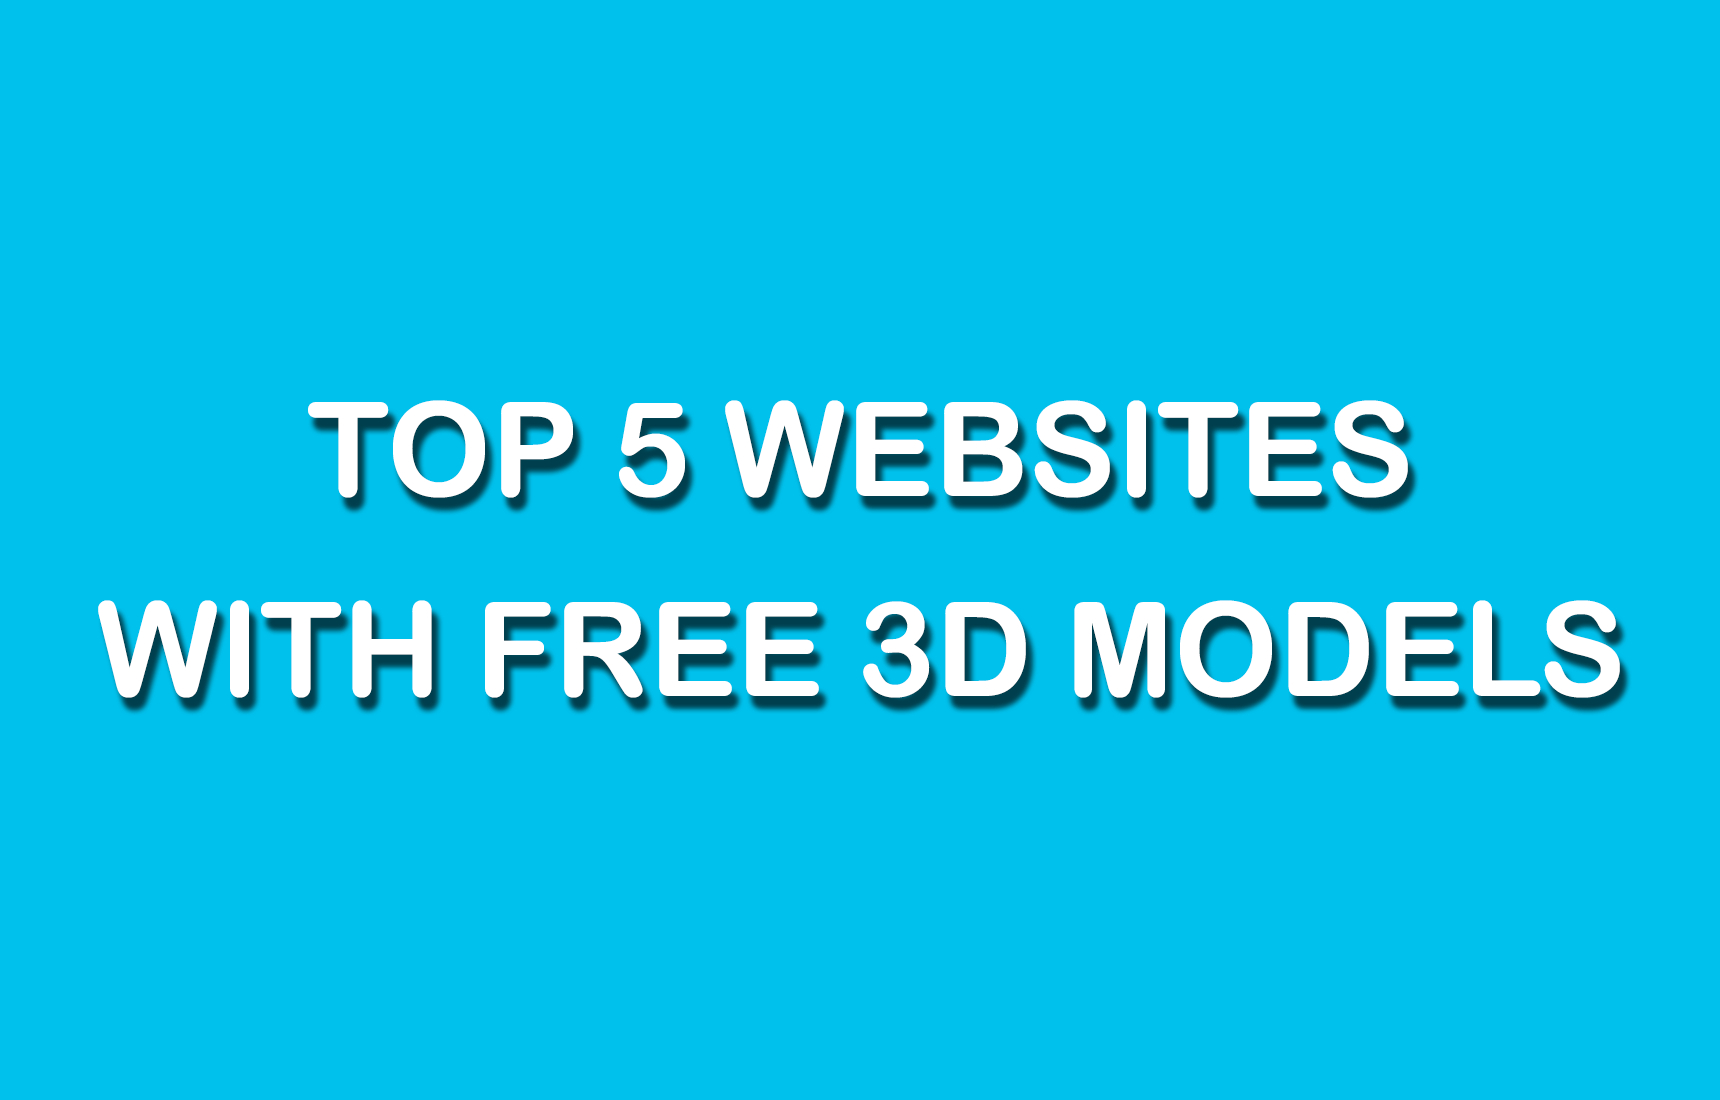 Top 5 Websites With Free 3D Printable Models? - Free 3D Printable Models